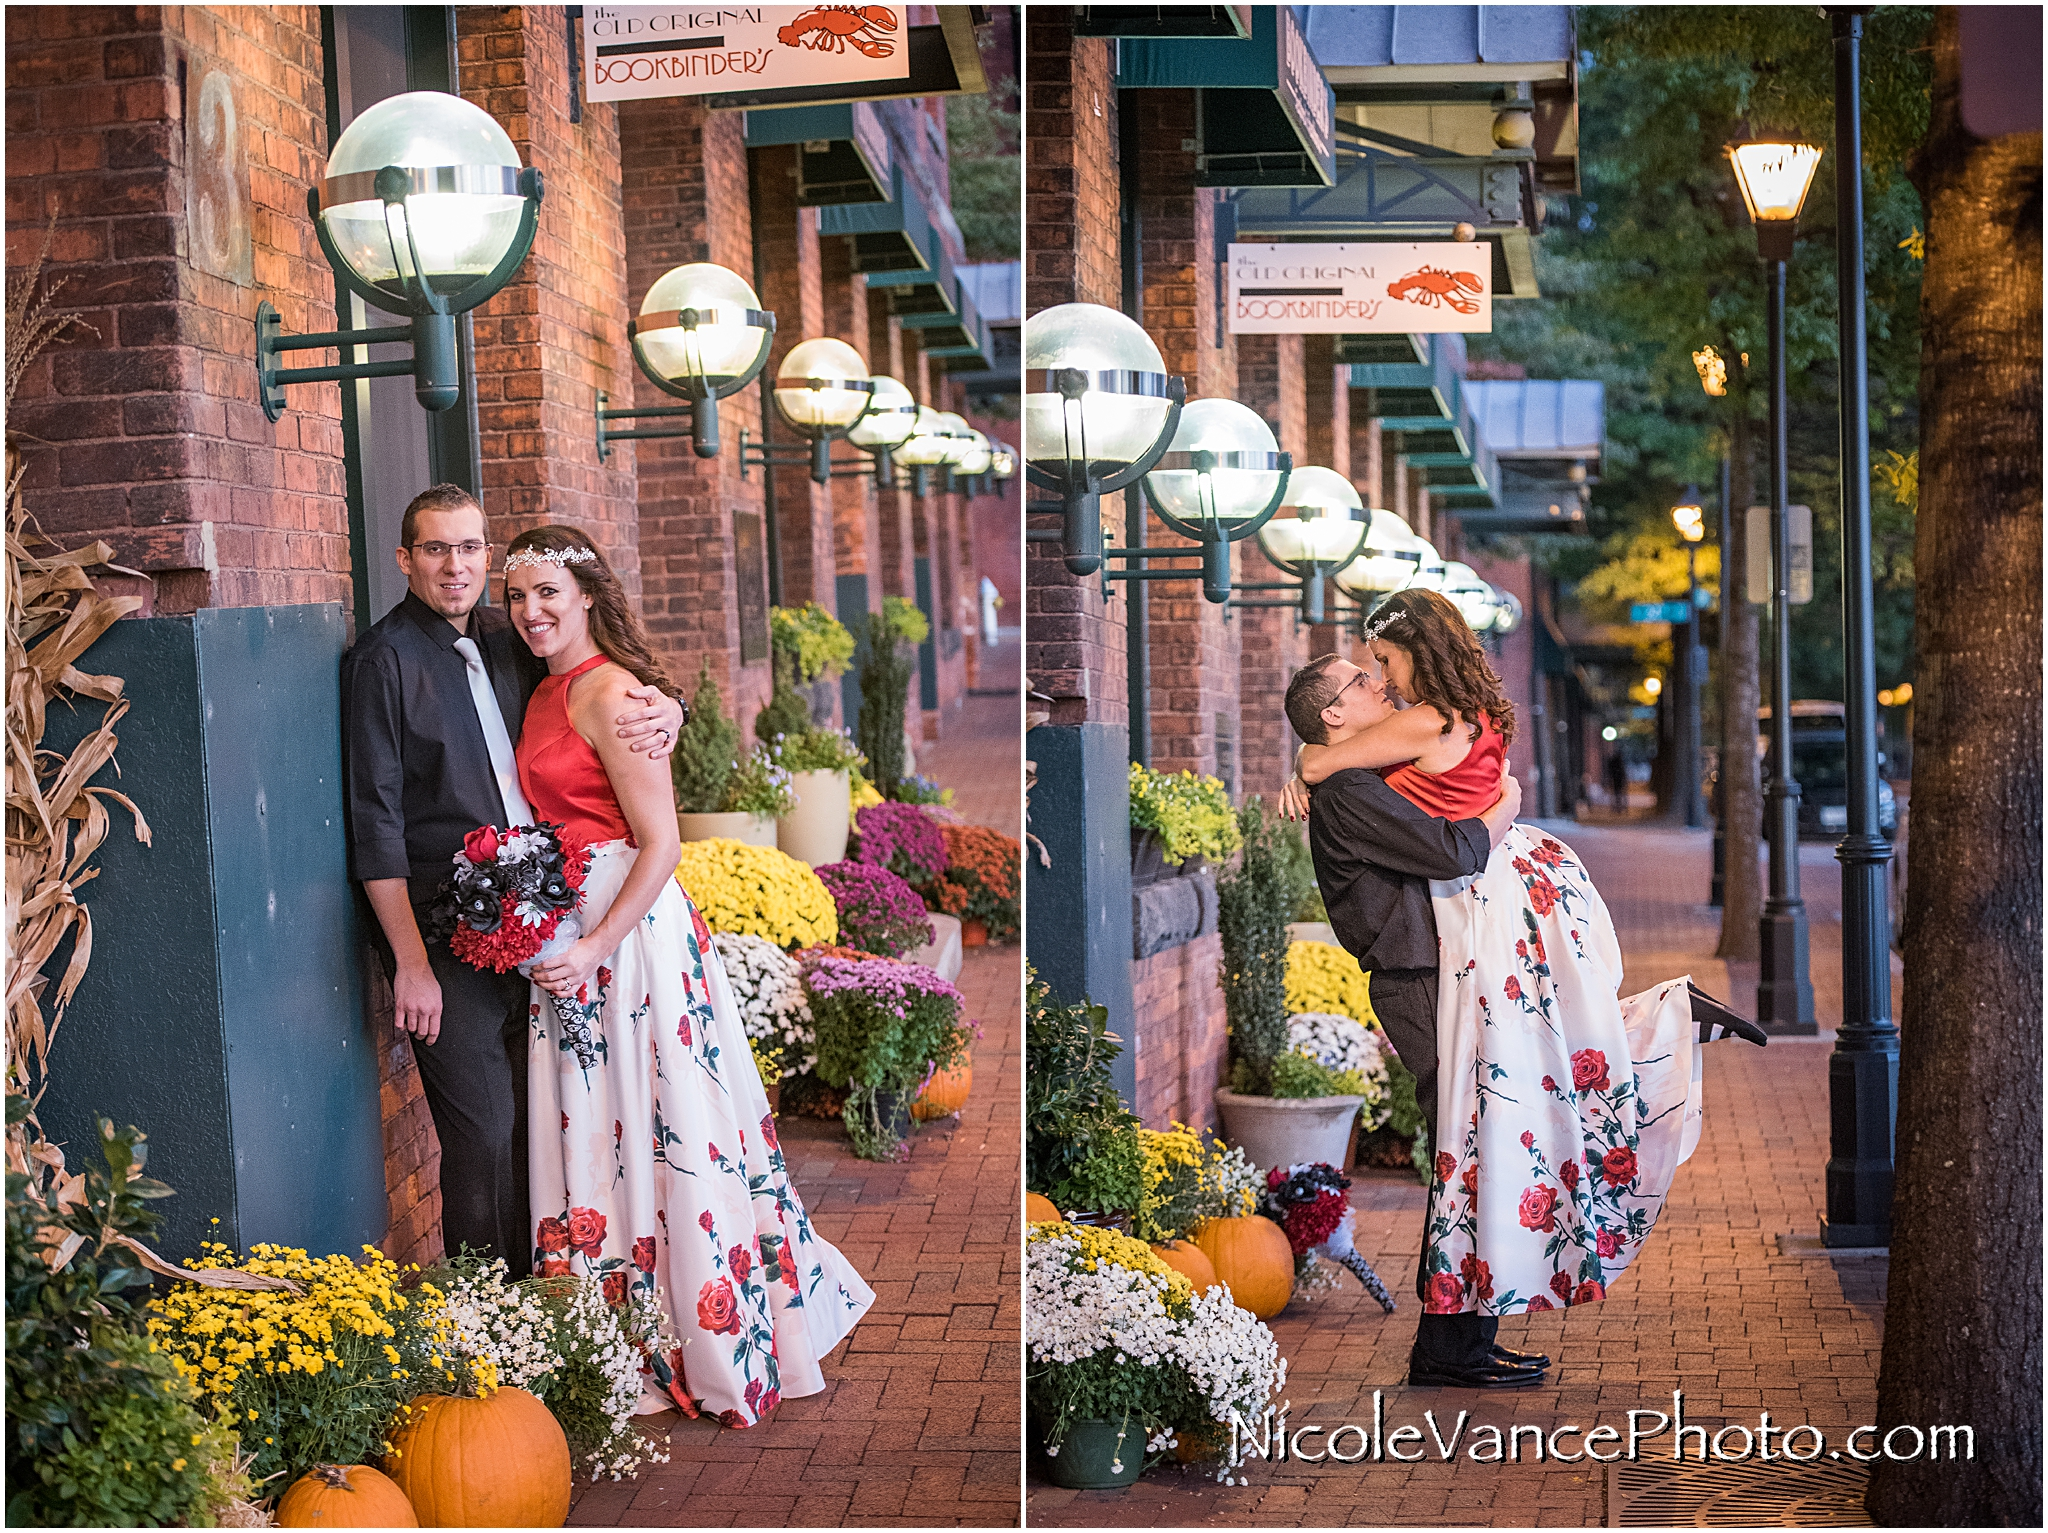 Bride and Groom Portraits at Bookbinders in Richmond, Virginia.